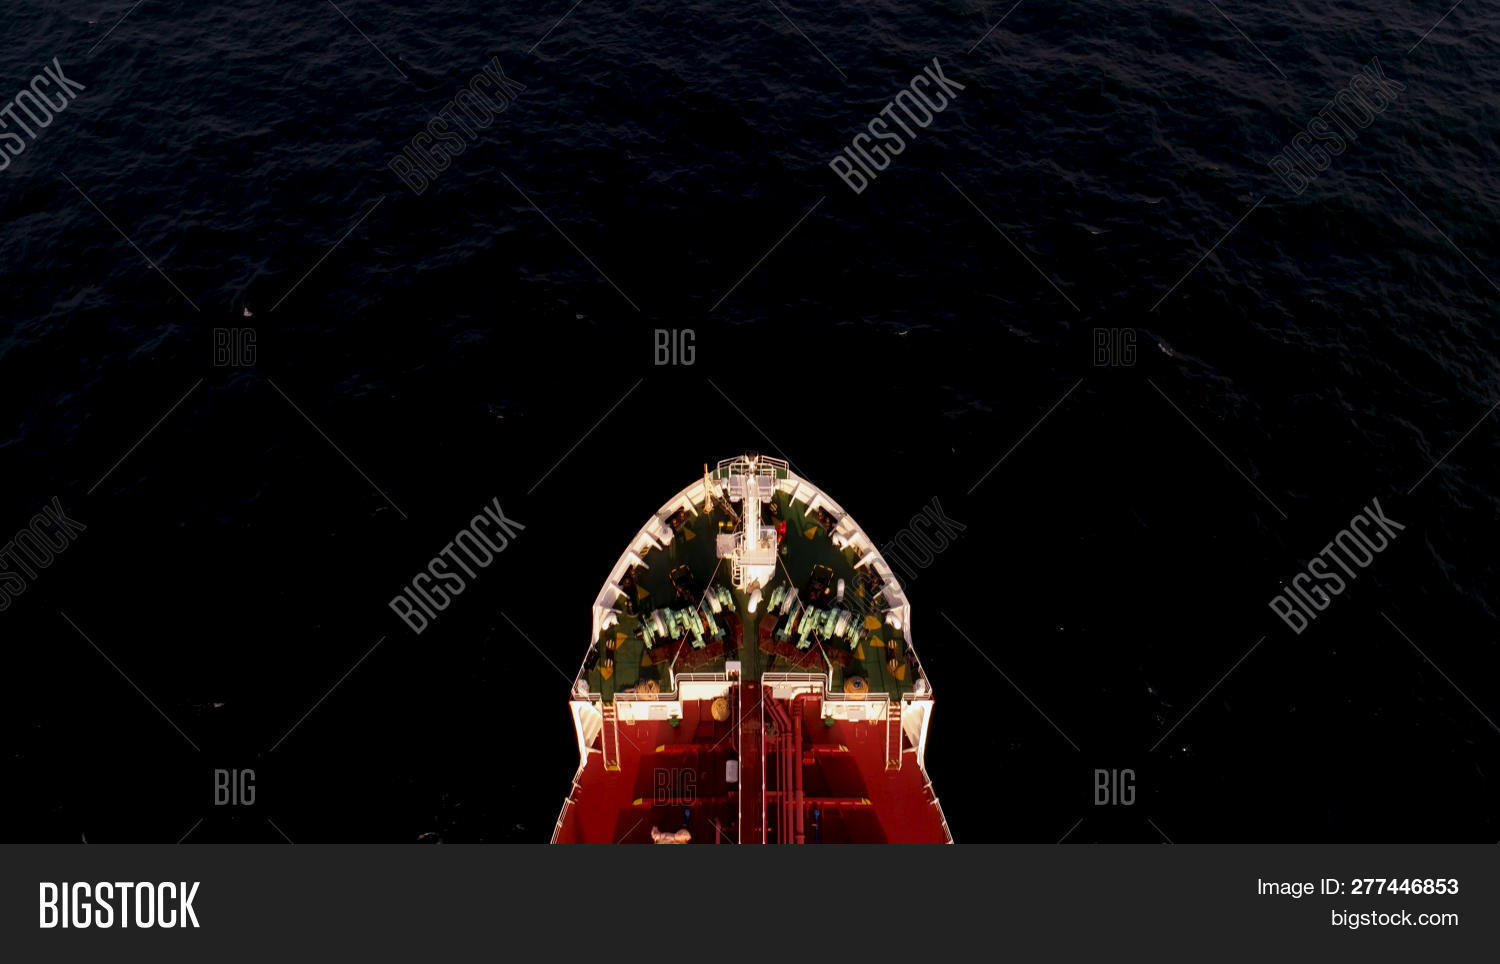 Singapore - 25 September 2018: Aerial view of big red container or cargo ship on blue sea and sky backgroung. Shot. Top view of large red barge sailing in the sea.